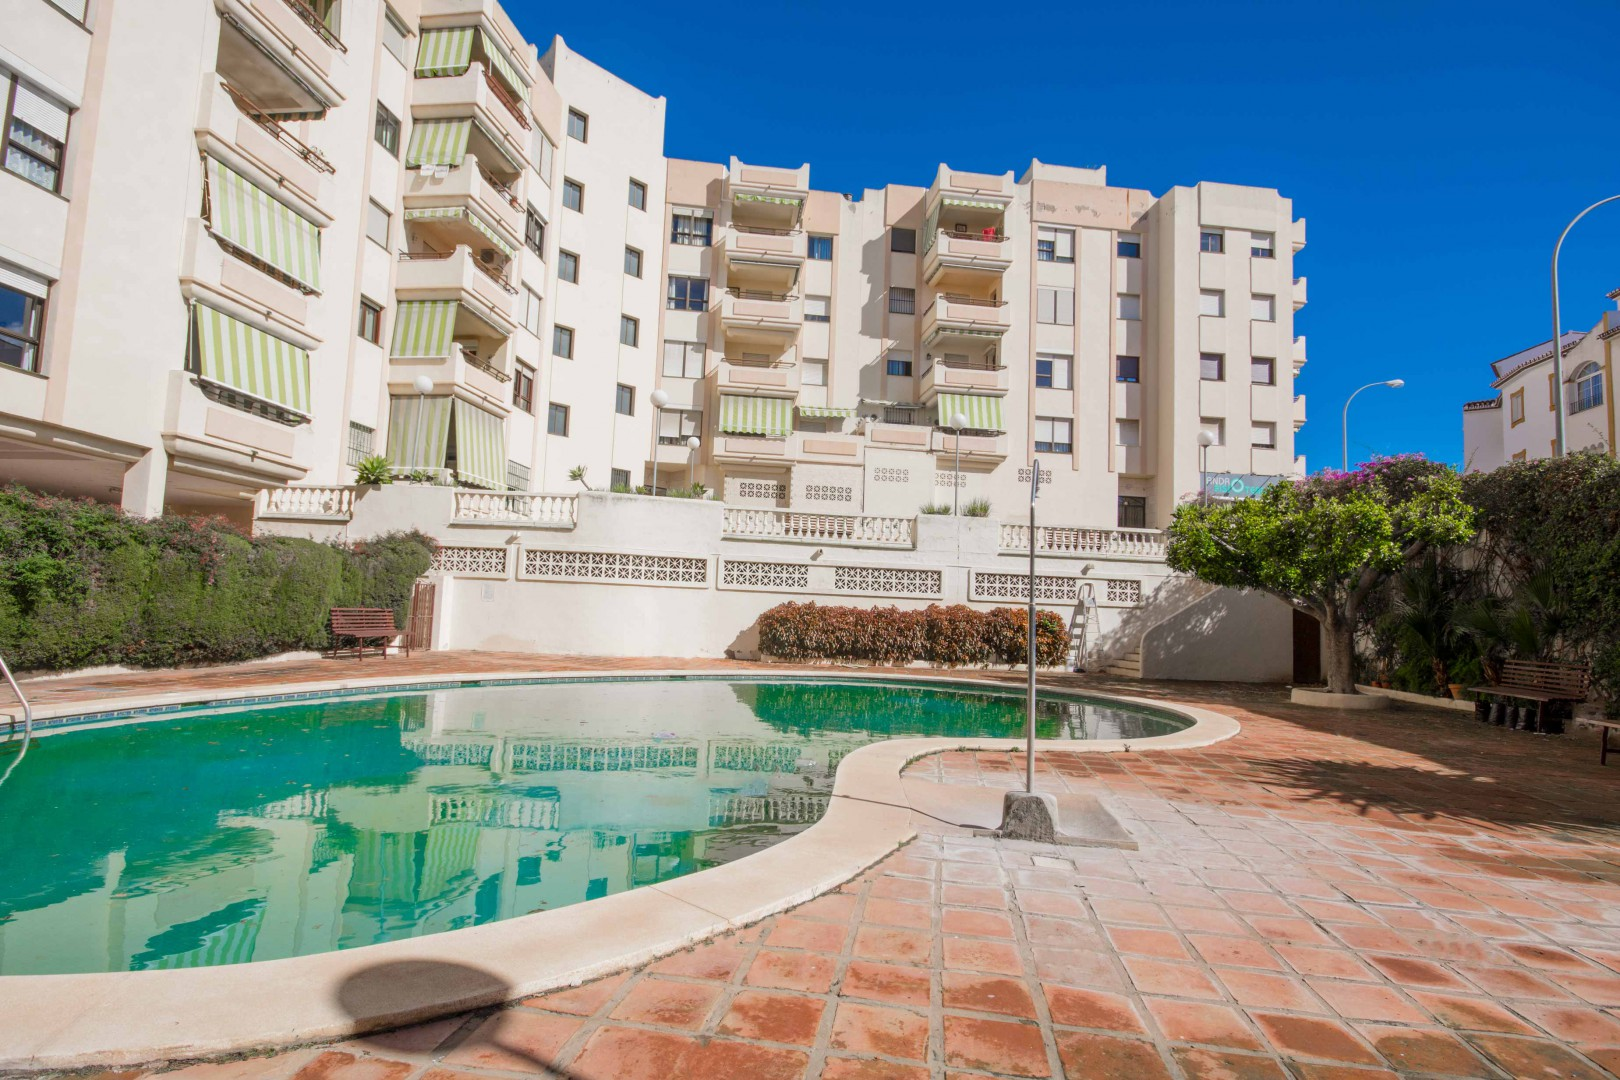 Appartement te koop in Estepona centrum